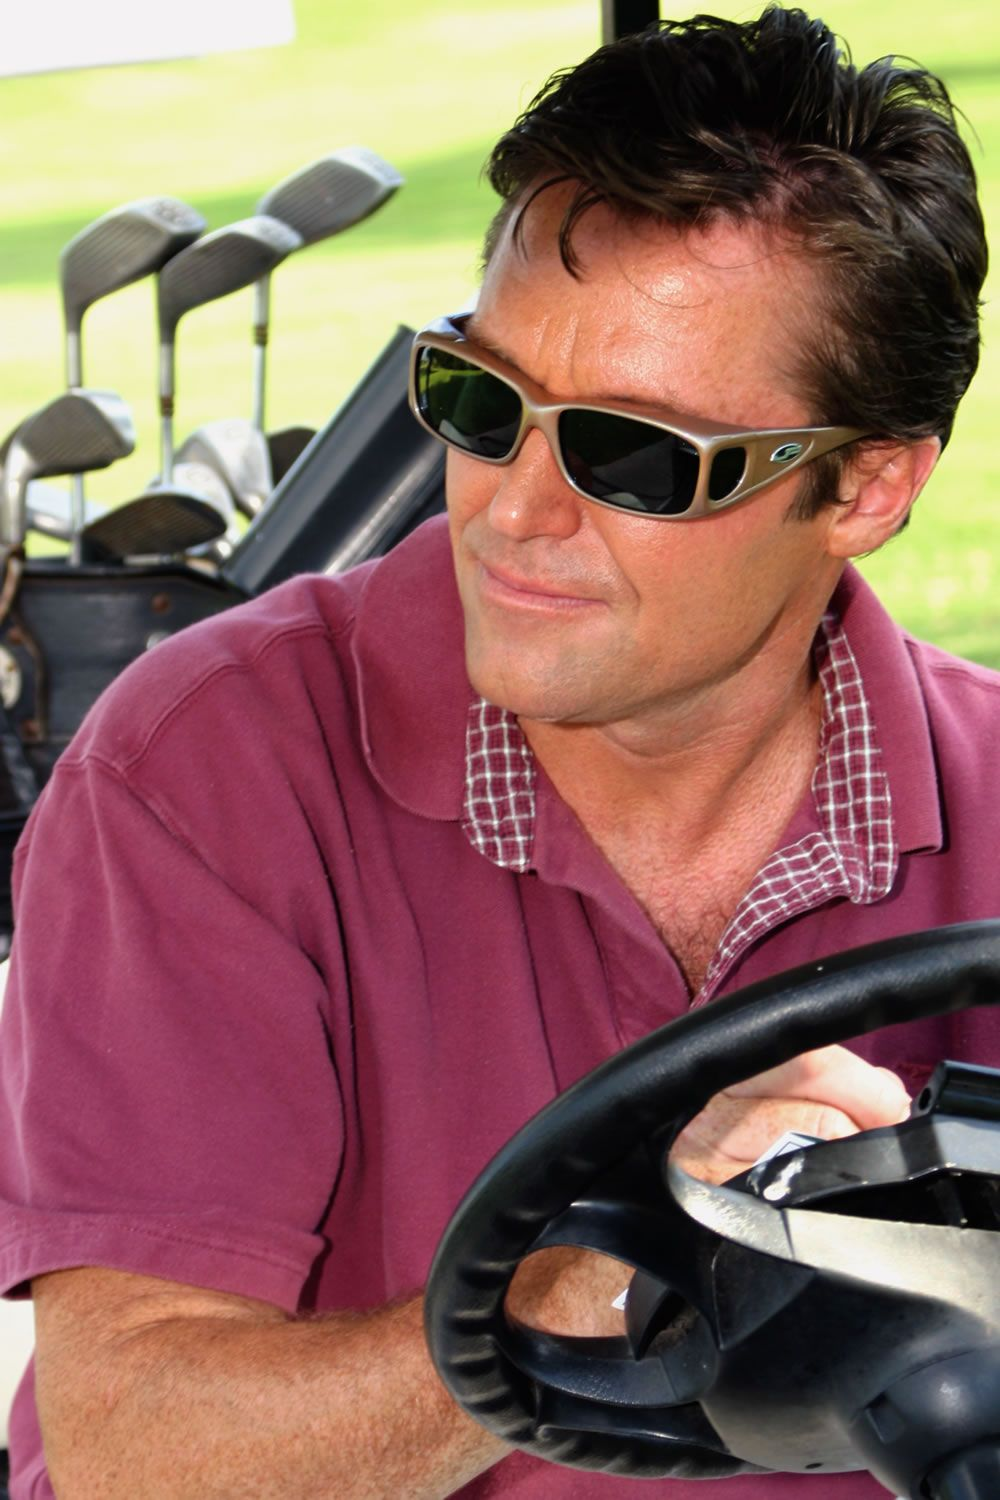 Razor Gun Metal (Polarvue® Gray) fitover sunglasses by Jonathan Paul® are great for ANY activity - they provide unparalleled function AND fashion.